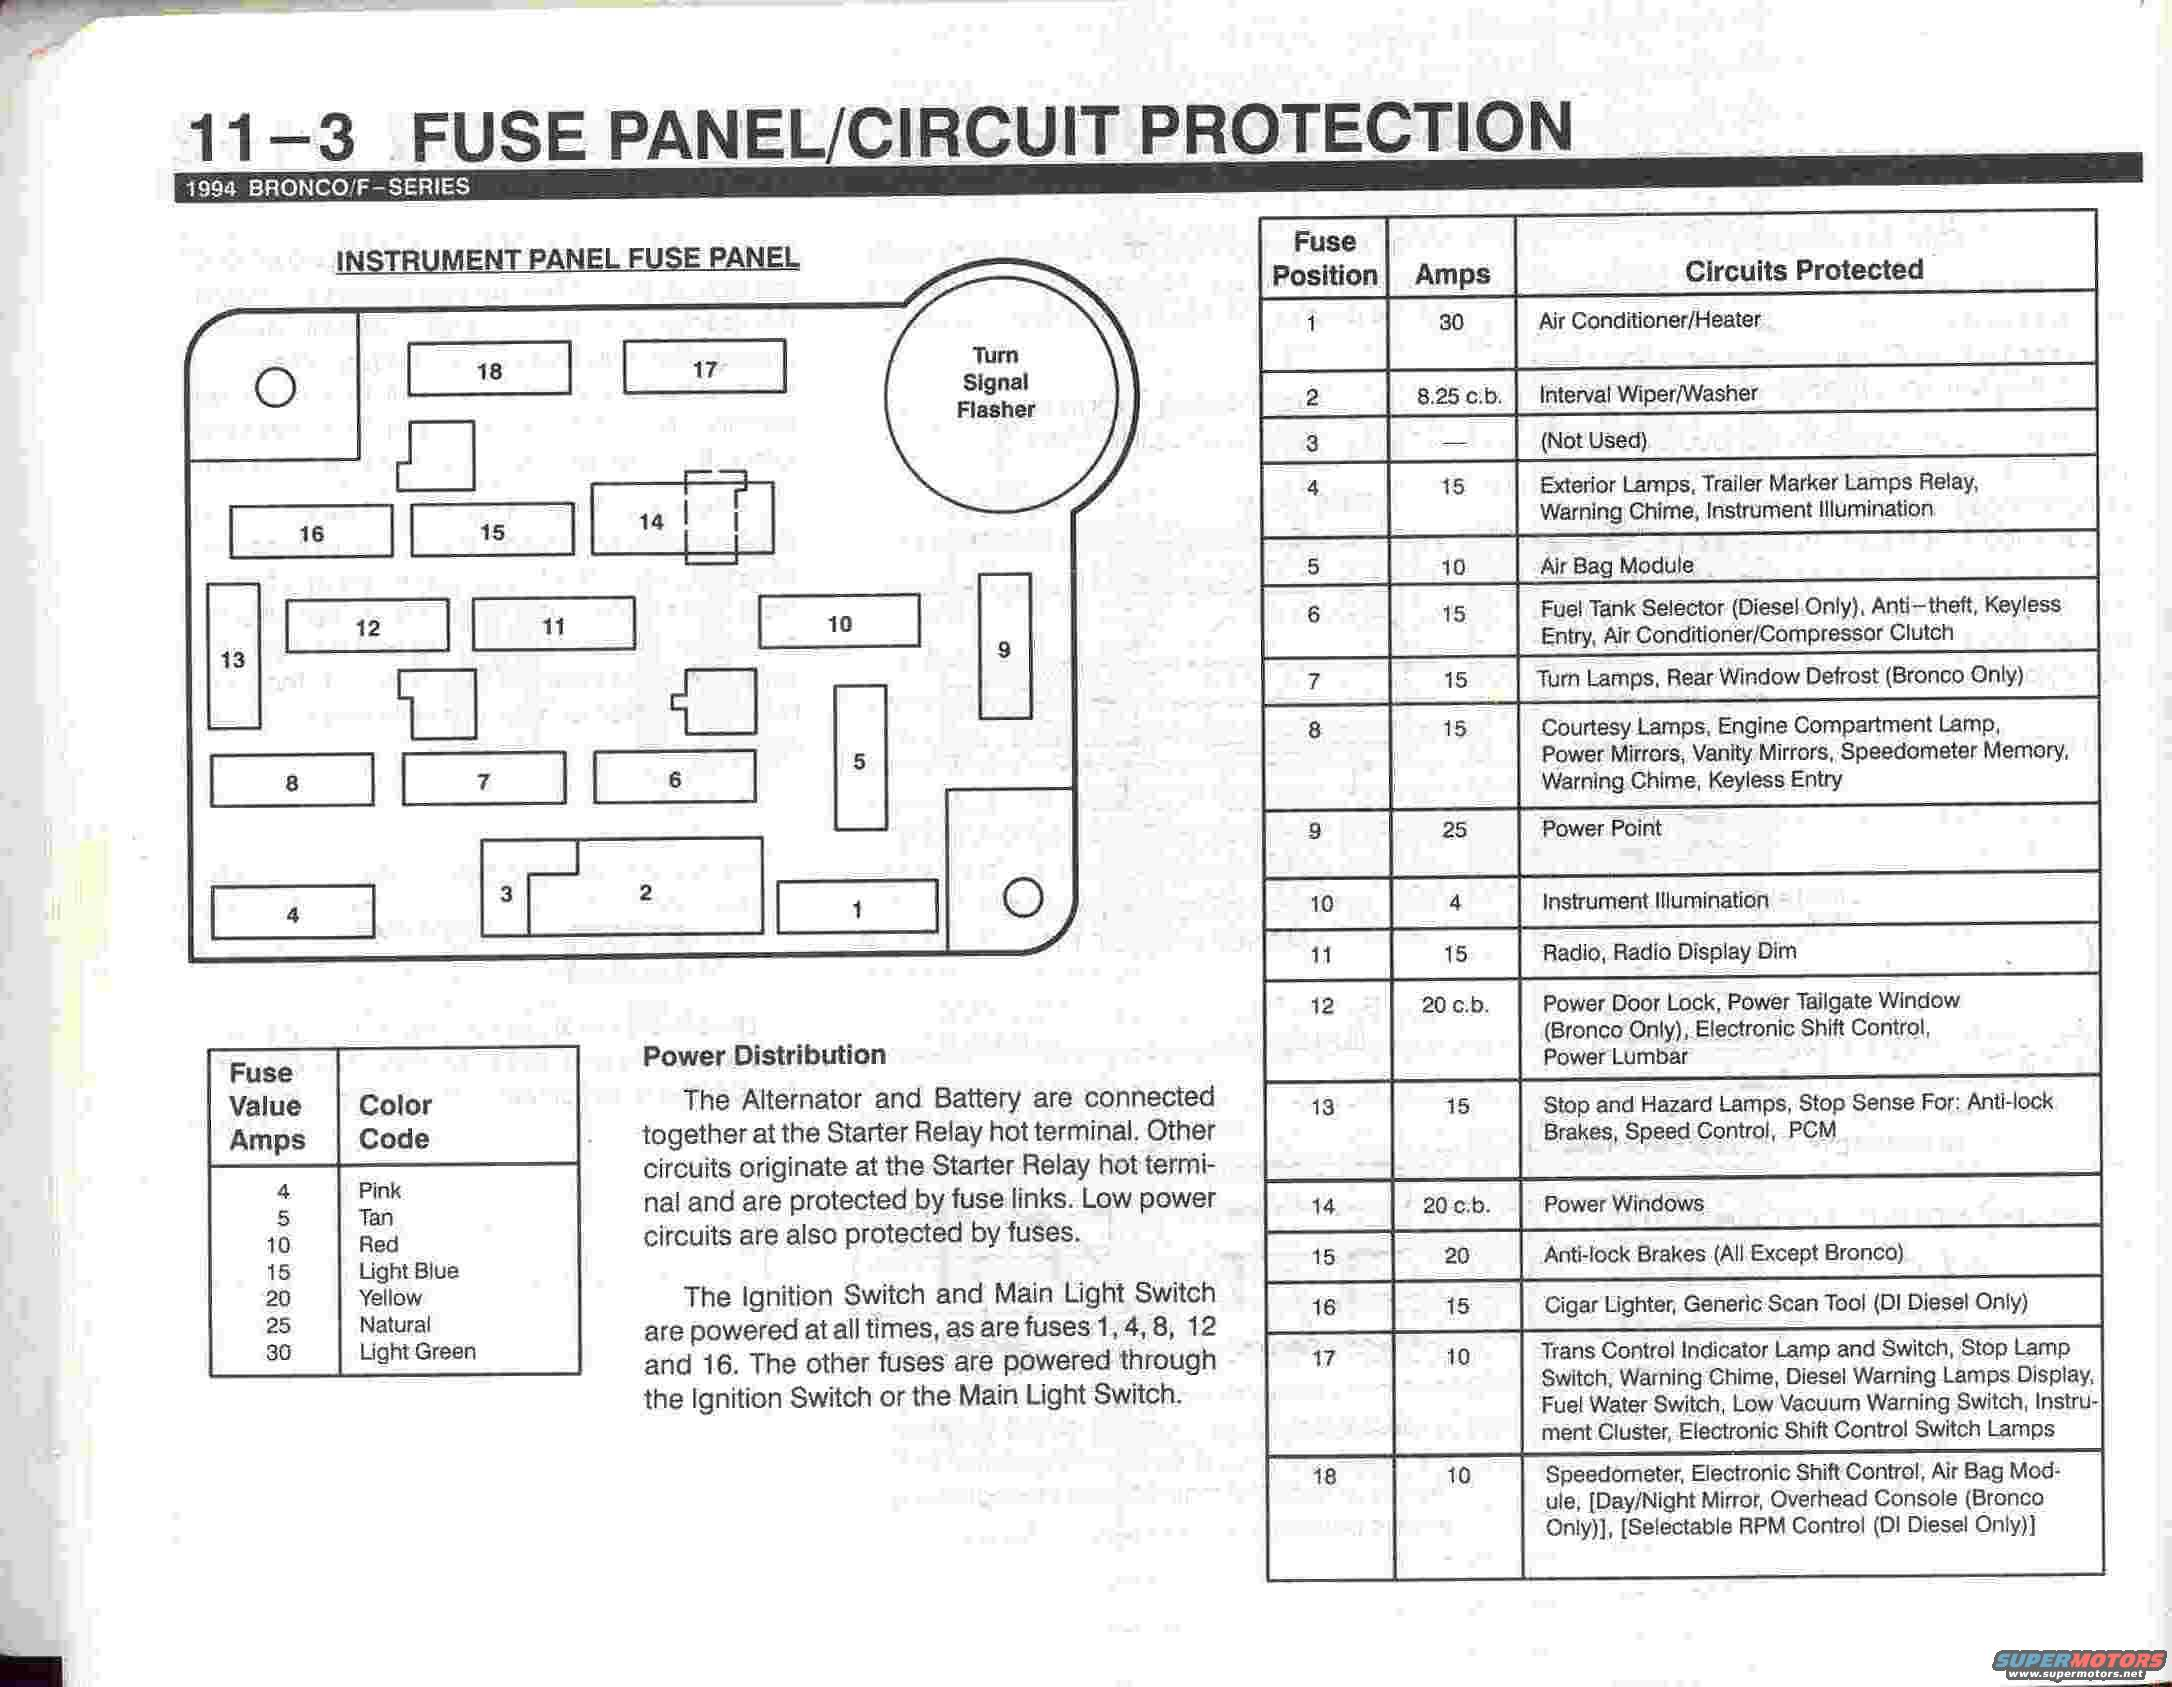 1996 Ford Bronco Fuse Box Diagram Detailed Wiring Diagrams Corvette 1994 Diy Enthusiasts U2022 Chevy Lumina